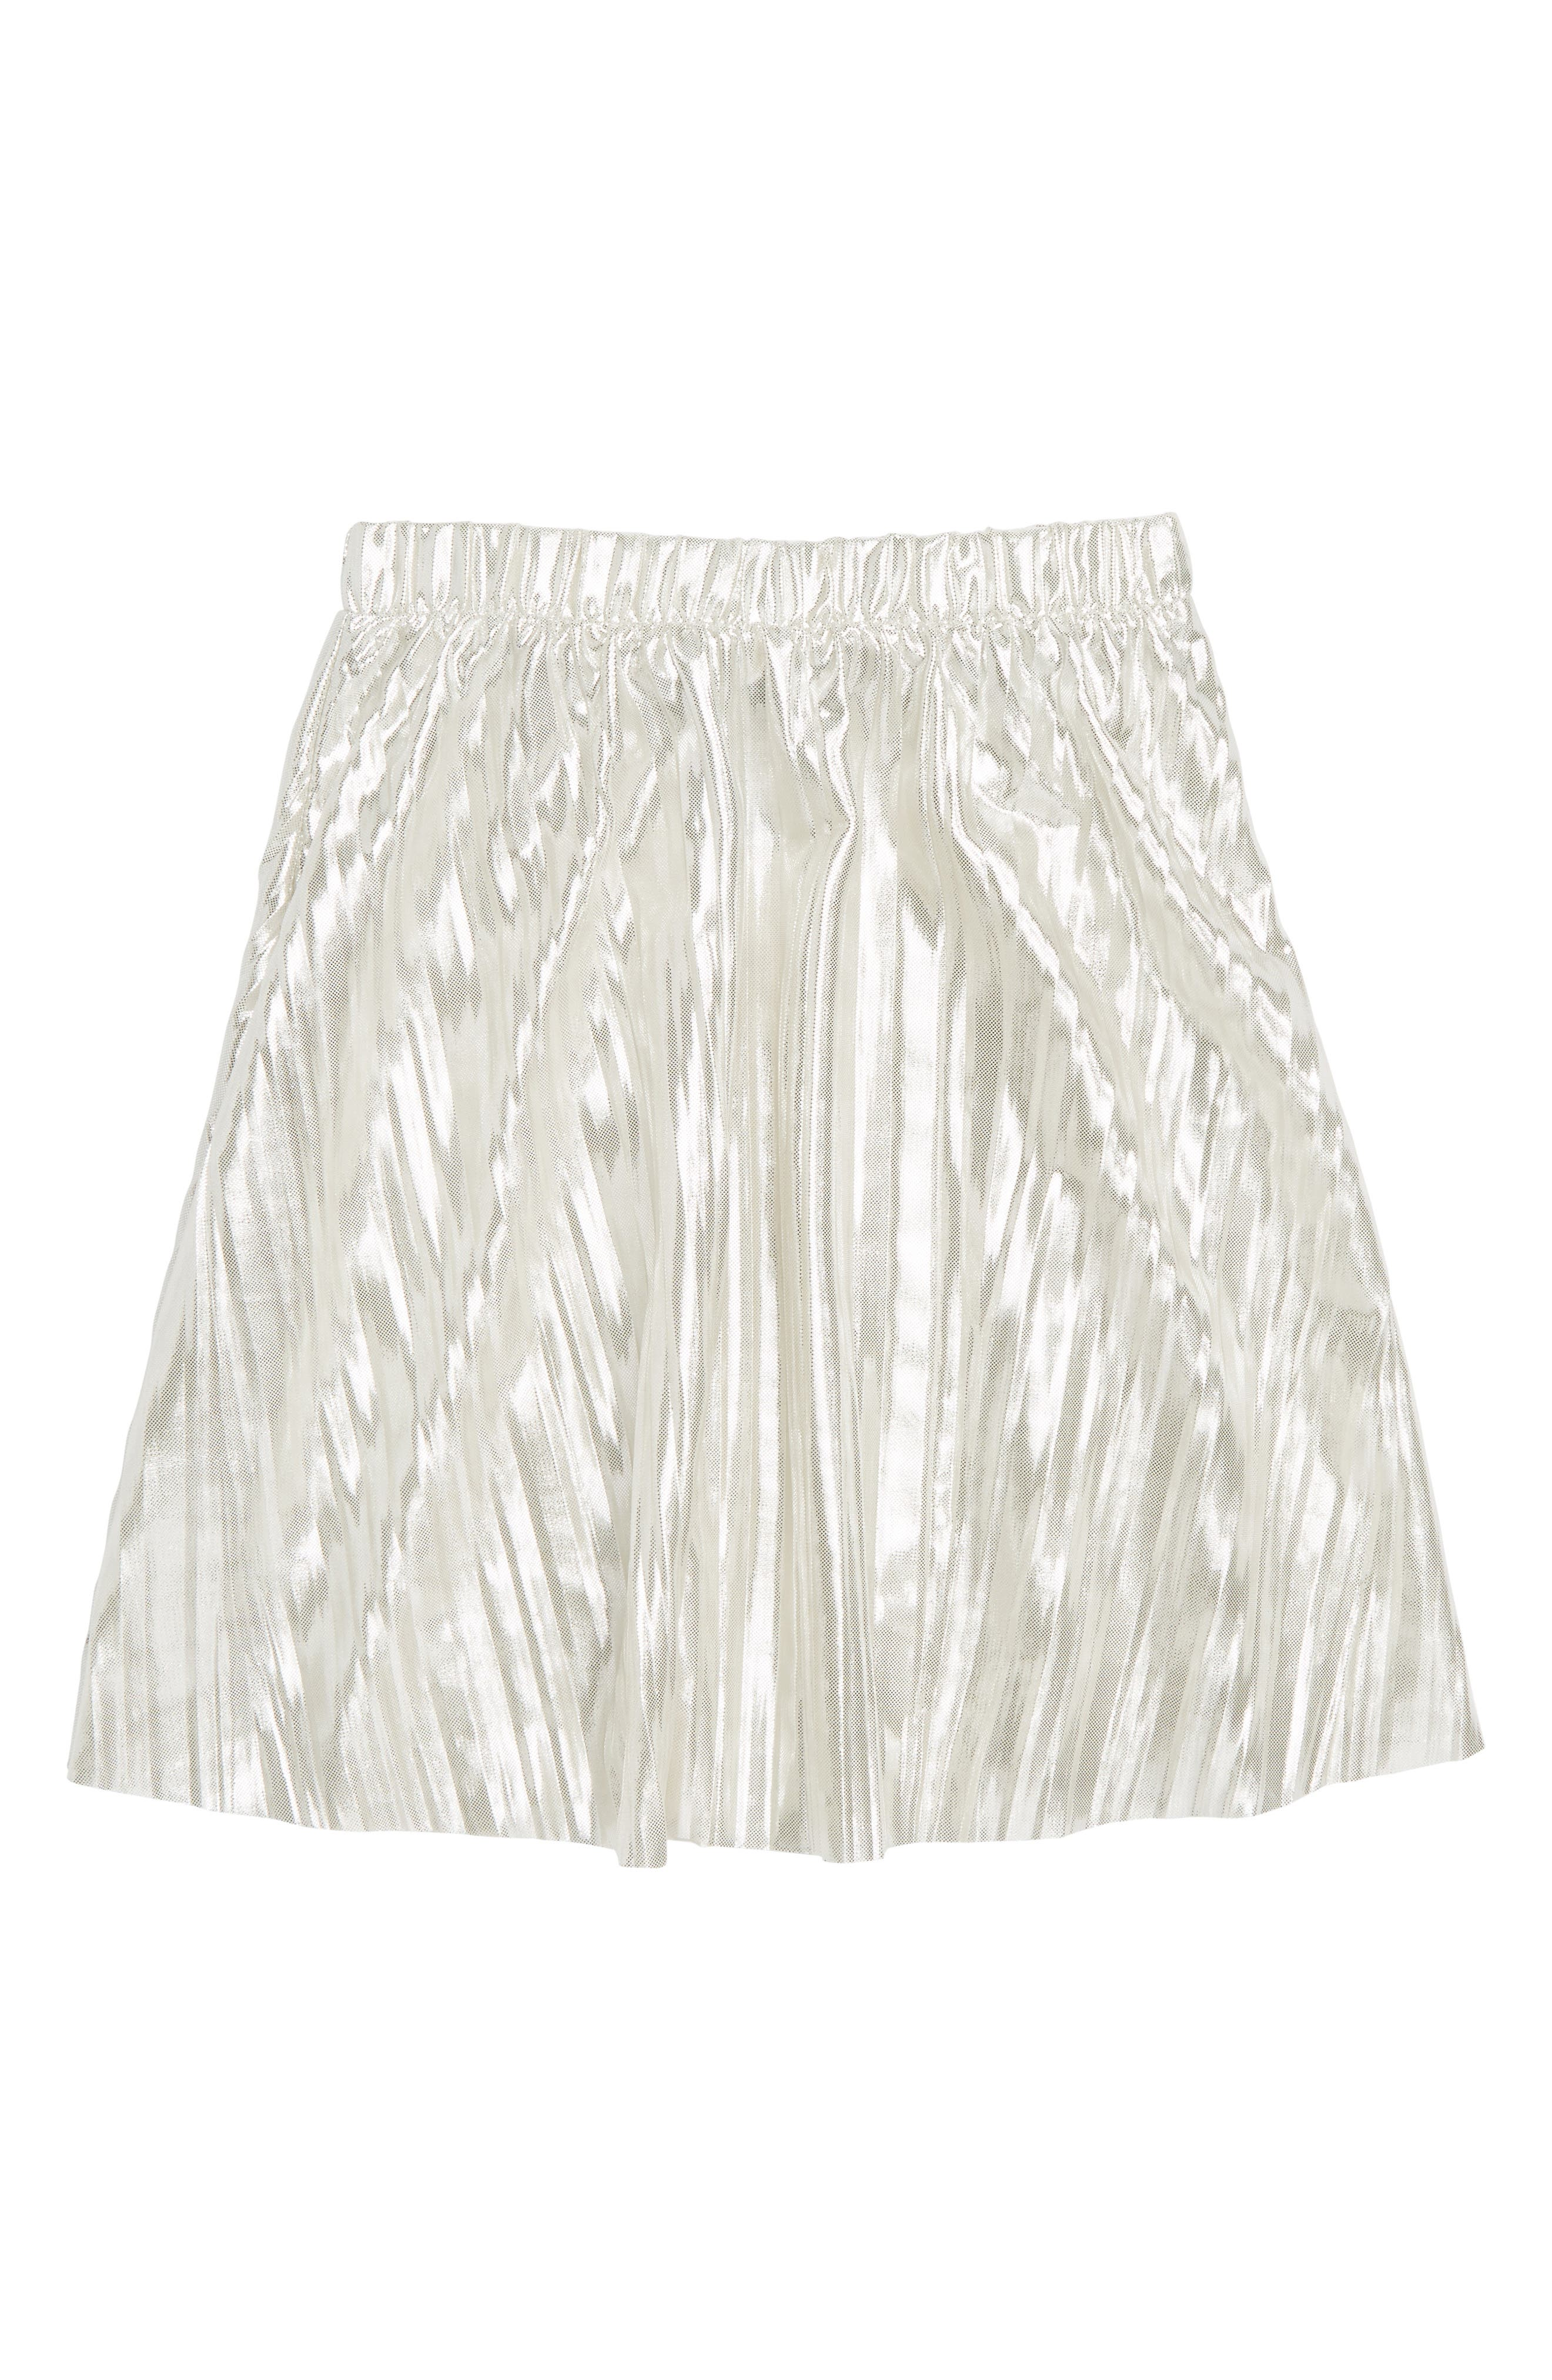 Metallic Micropleated Skirt,                             Main thumbnail 1, color,                             100